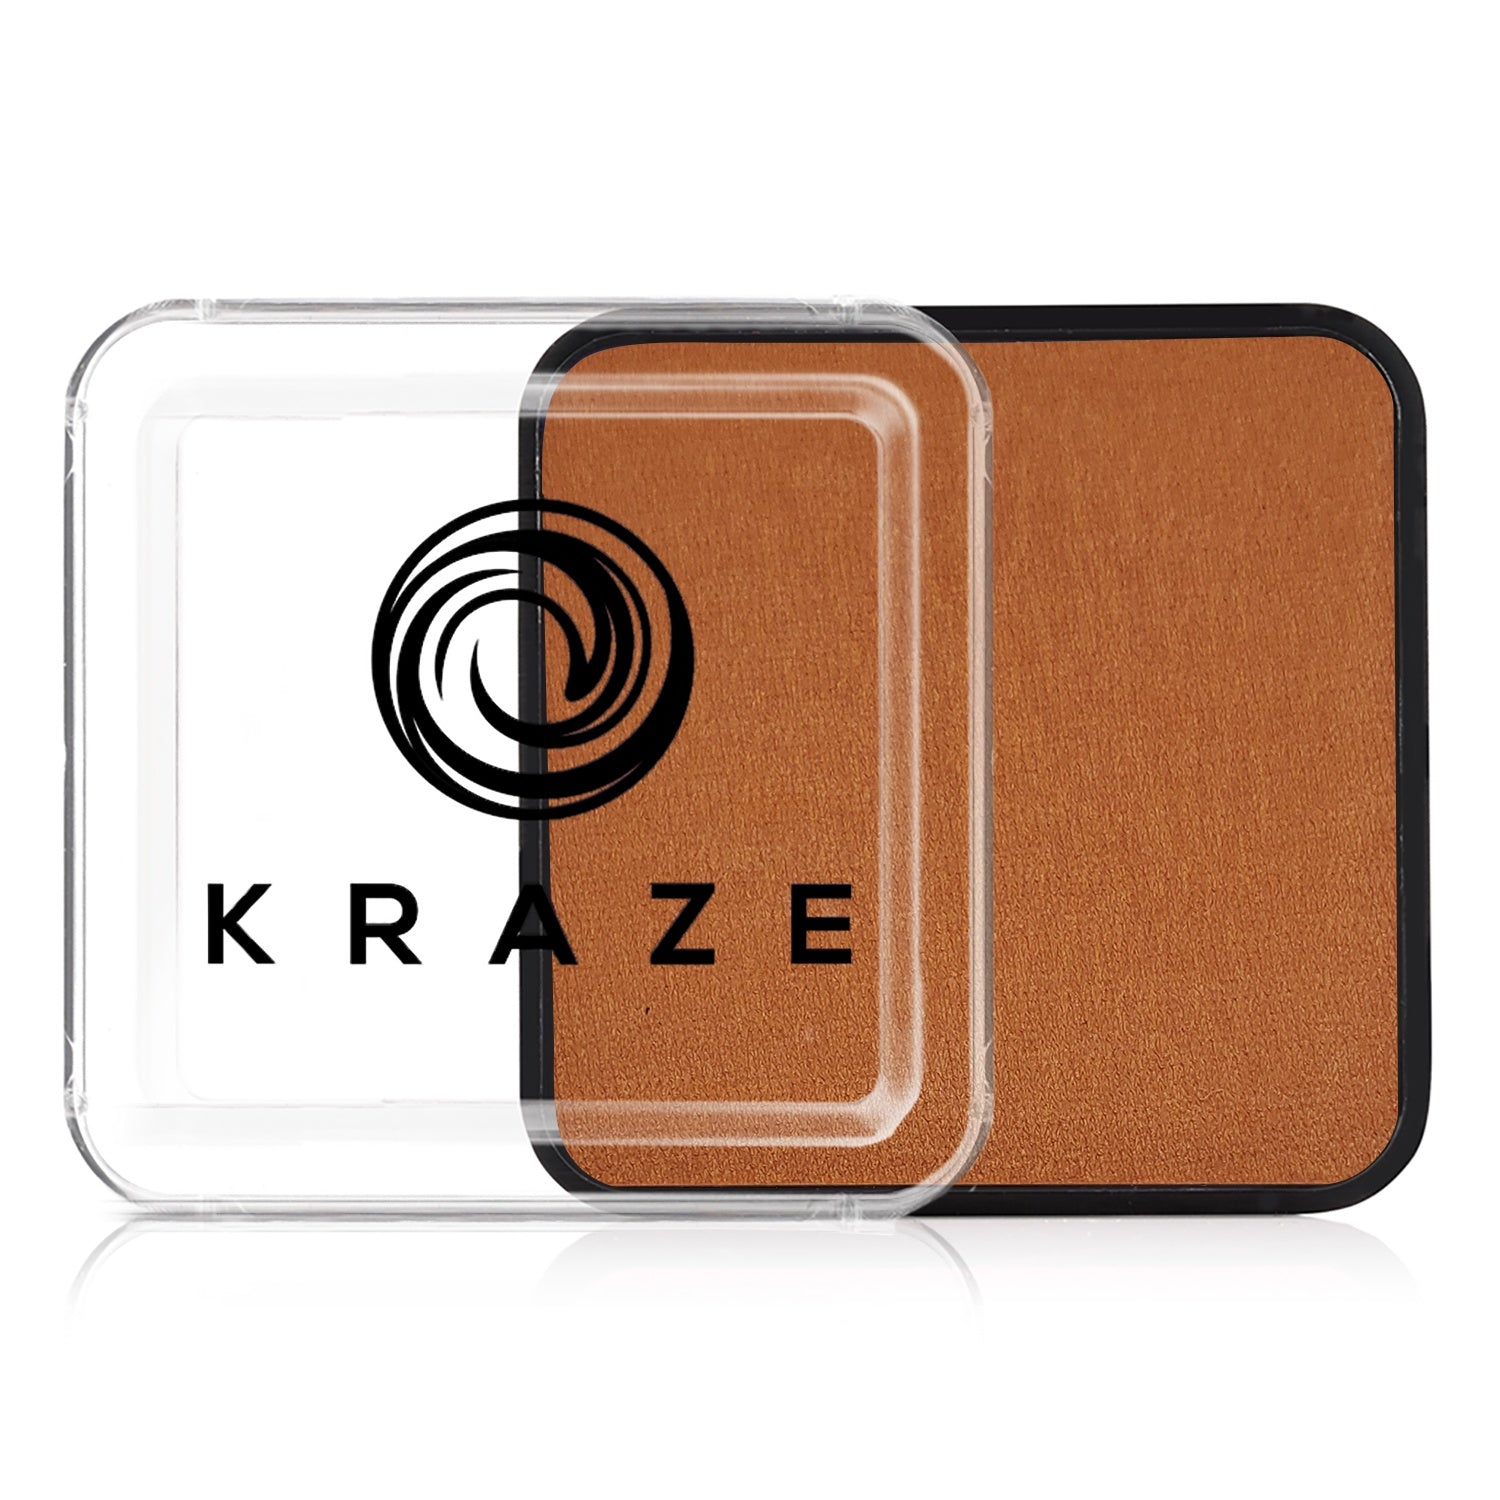 Kraze FX Square Face Paint - 25 gm - Metallic Orange